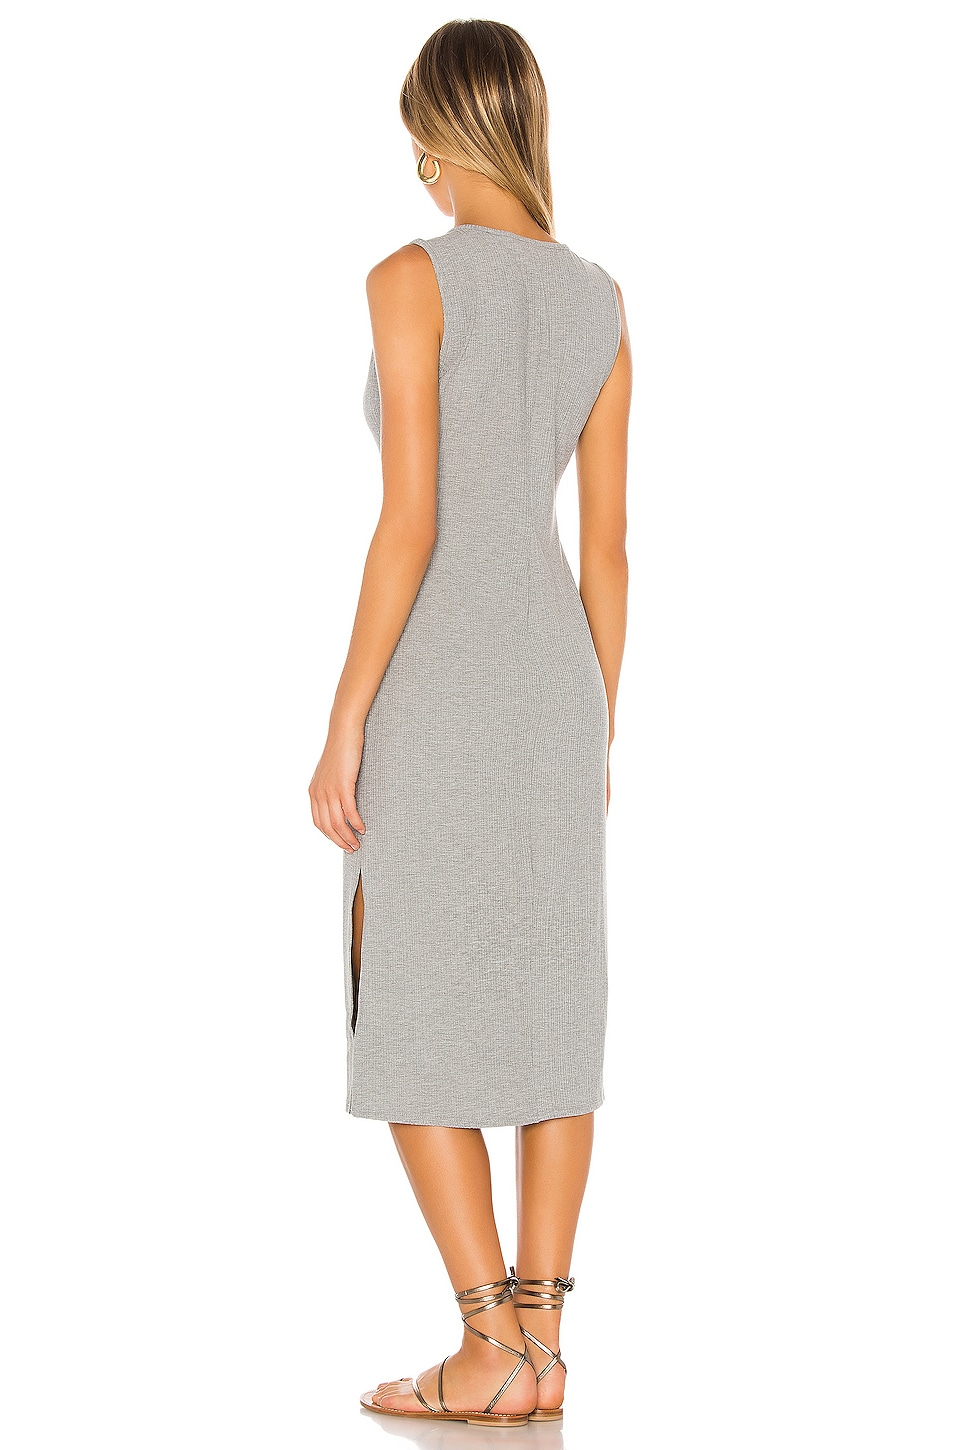 Day Shirt Sleeveless Dress, view 3, click to view large image.